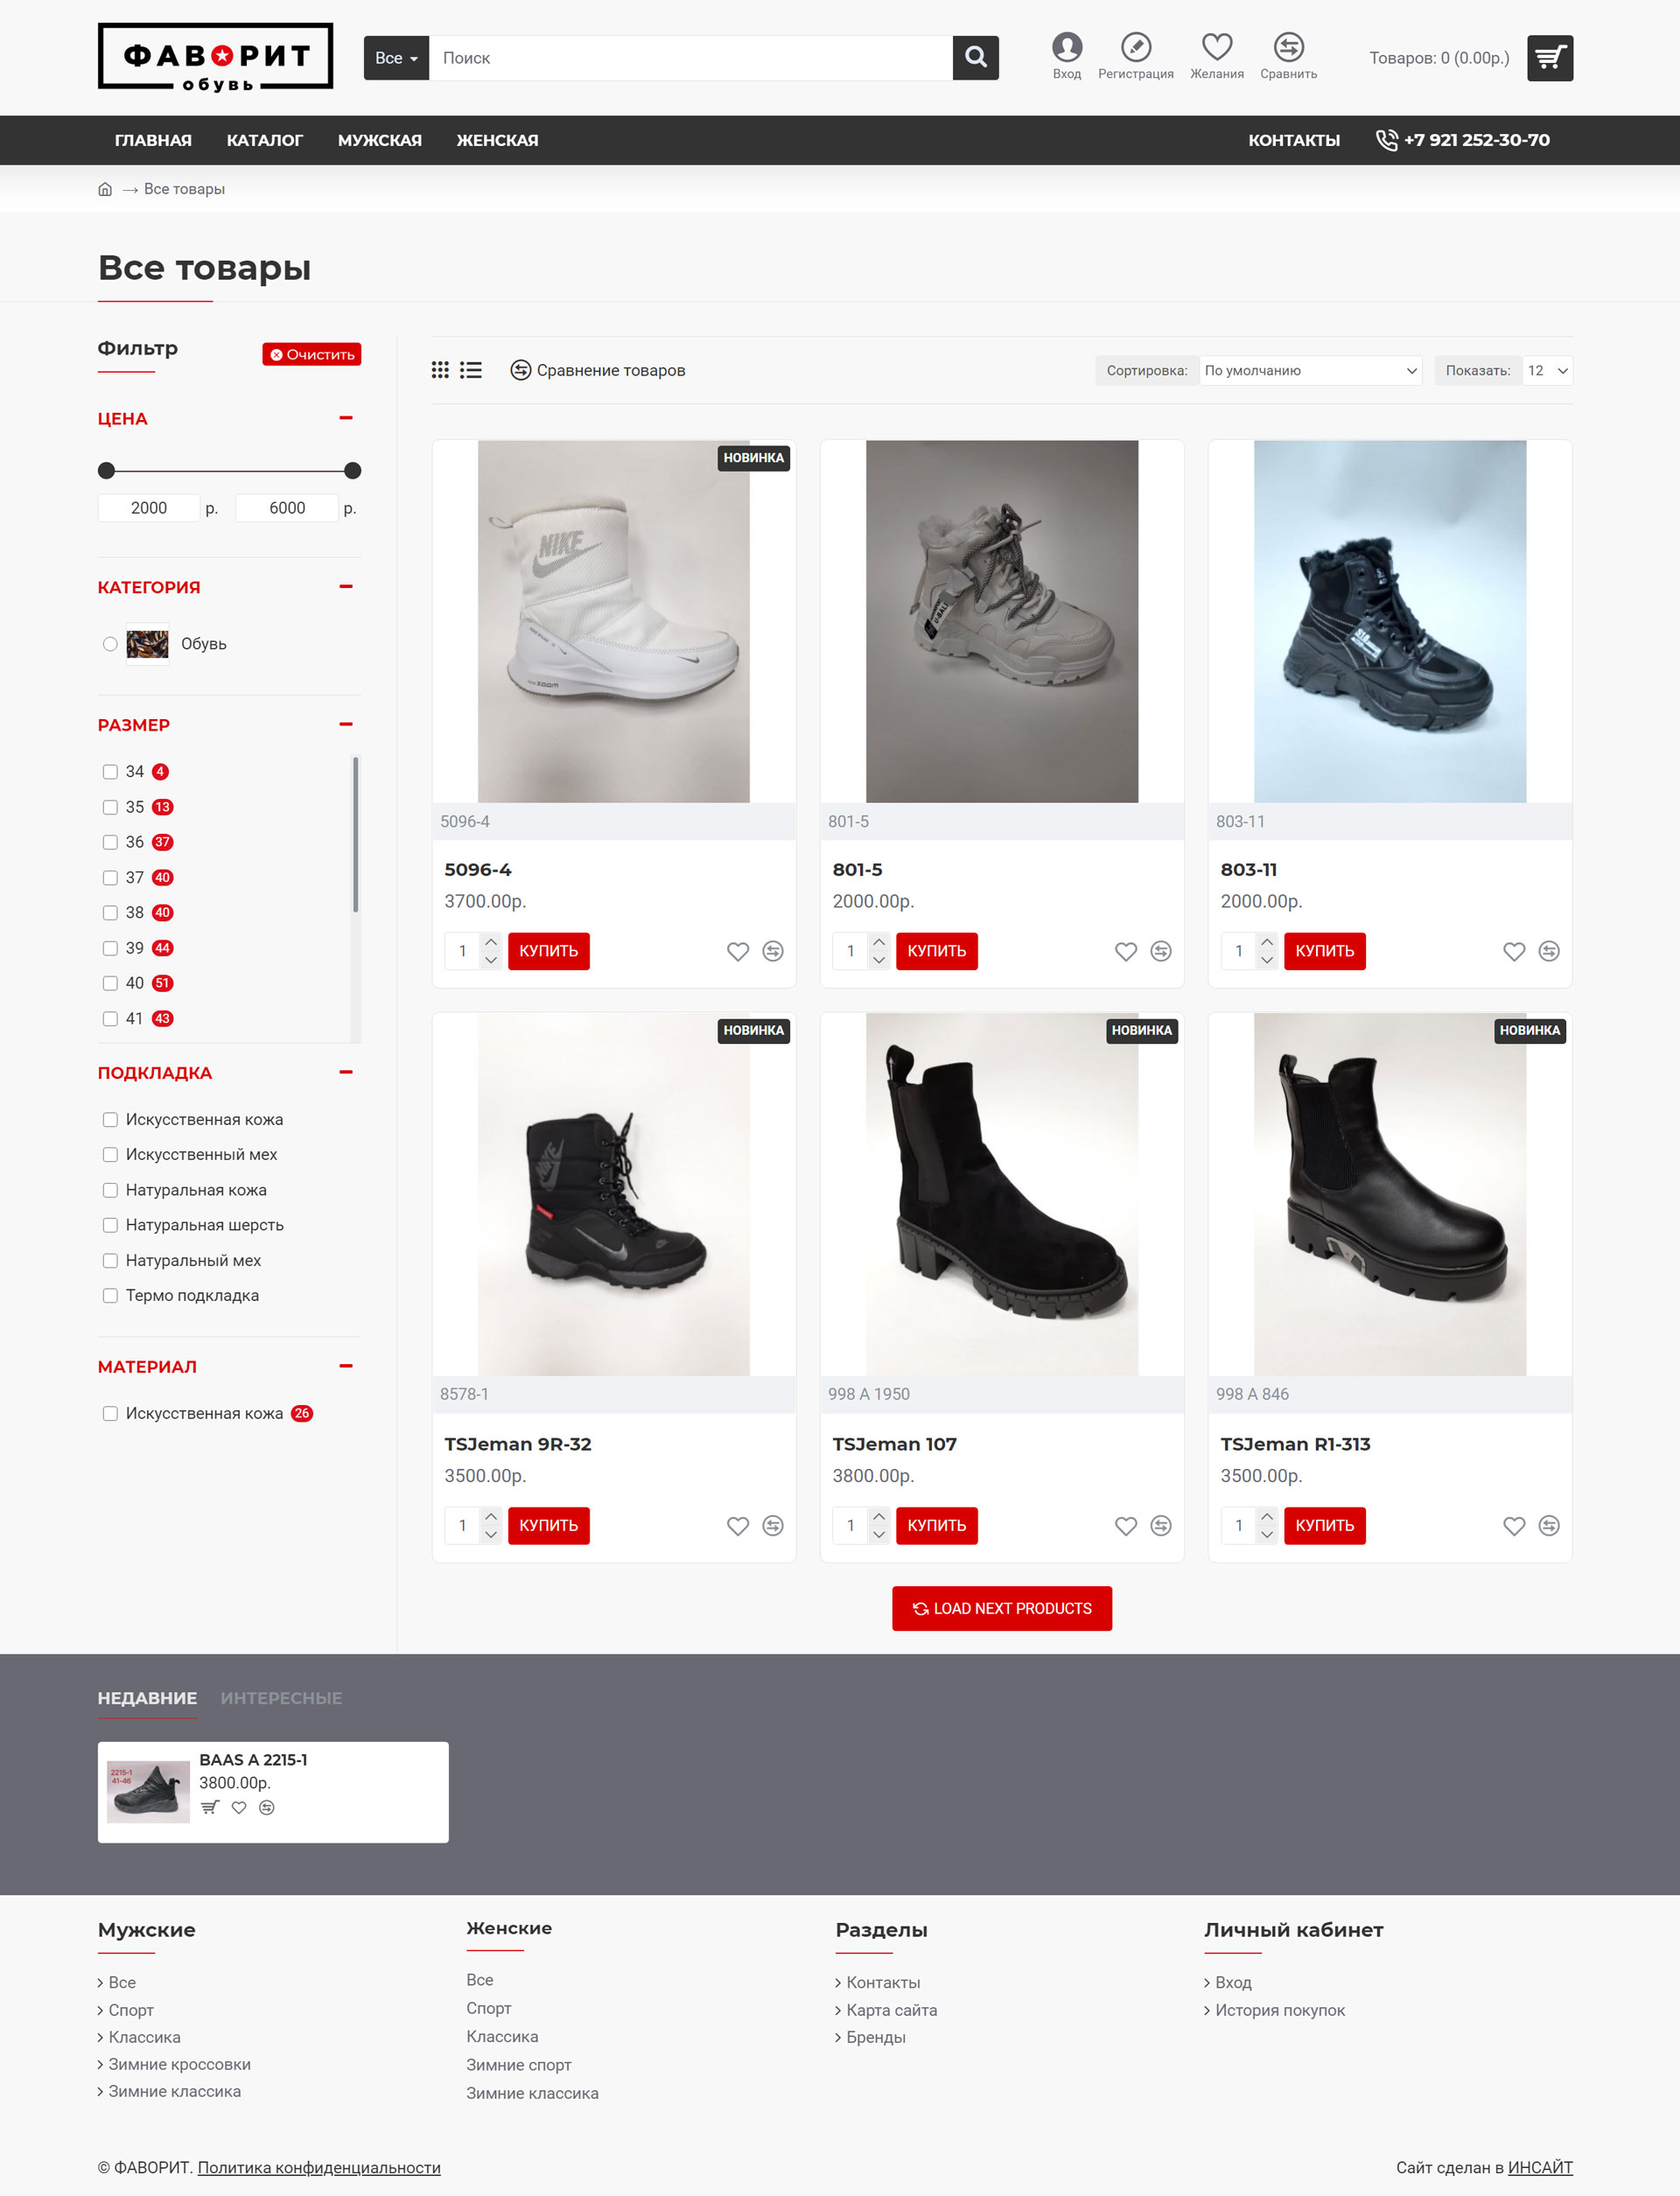 Internet shoe store Favorite